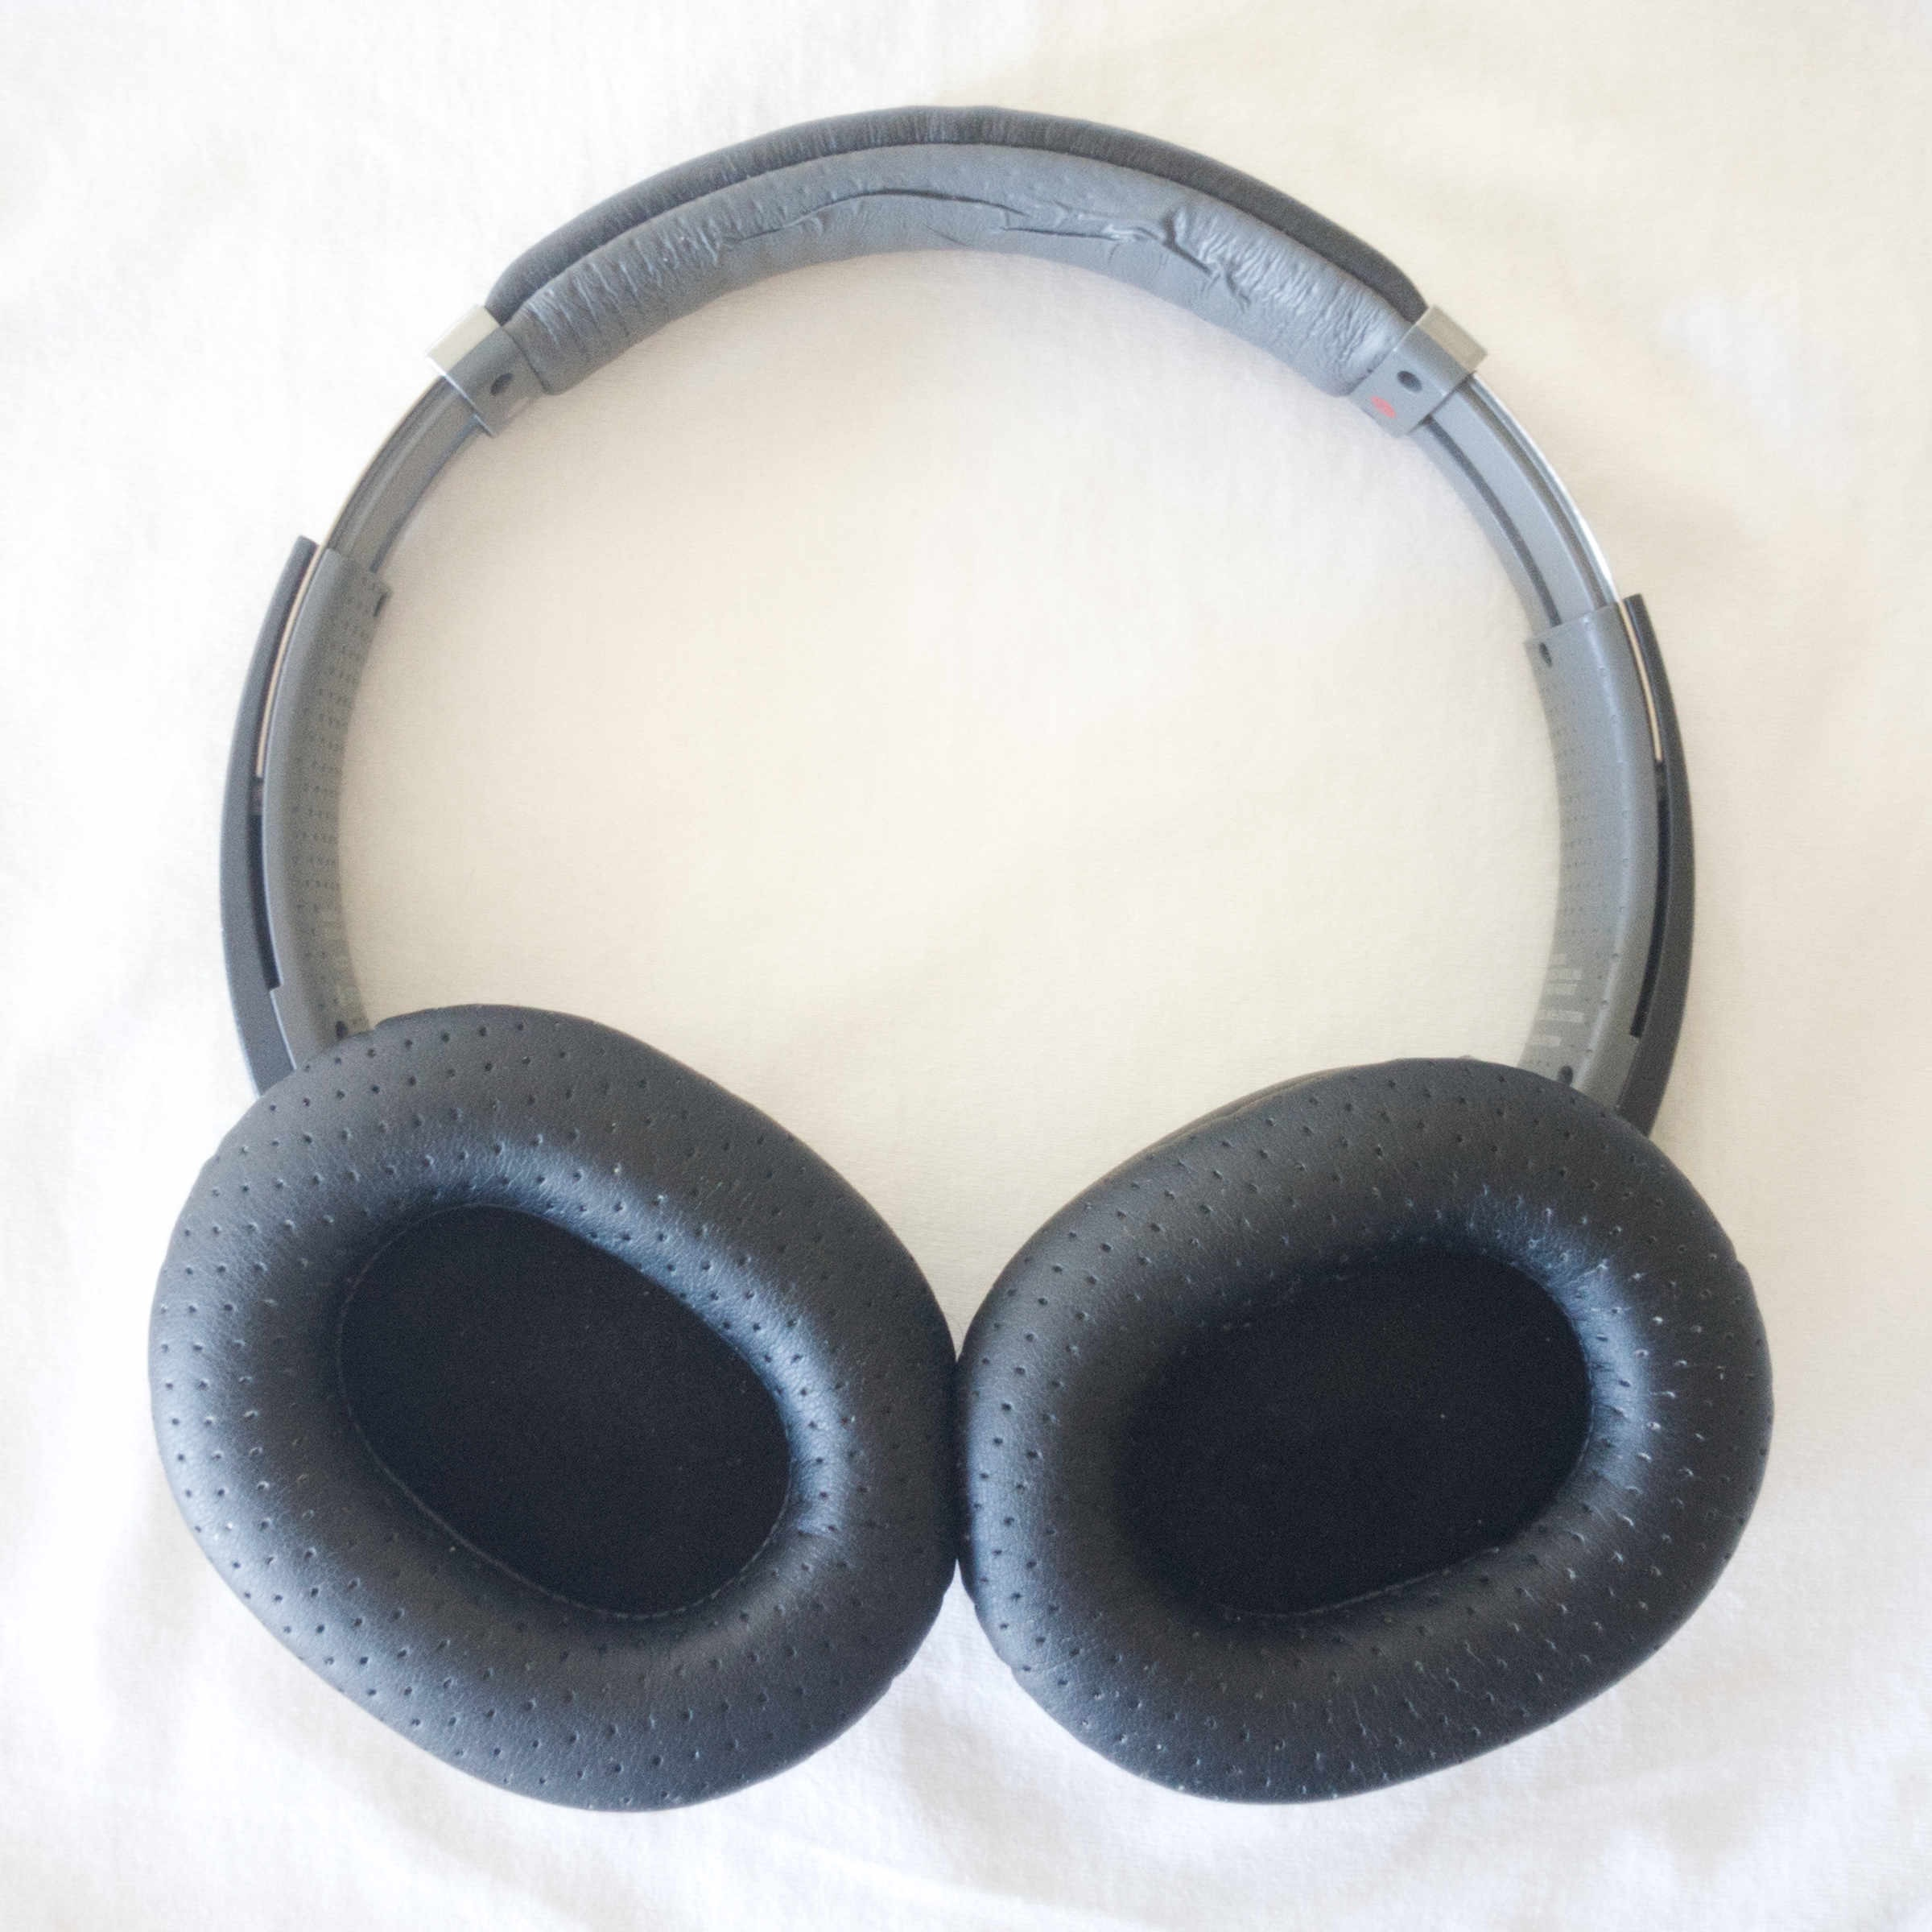 """""""After"""" photo of my MDR-770BN headphones with the Wicked Cushions MDR-7506 replacement earpads installed."""